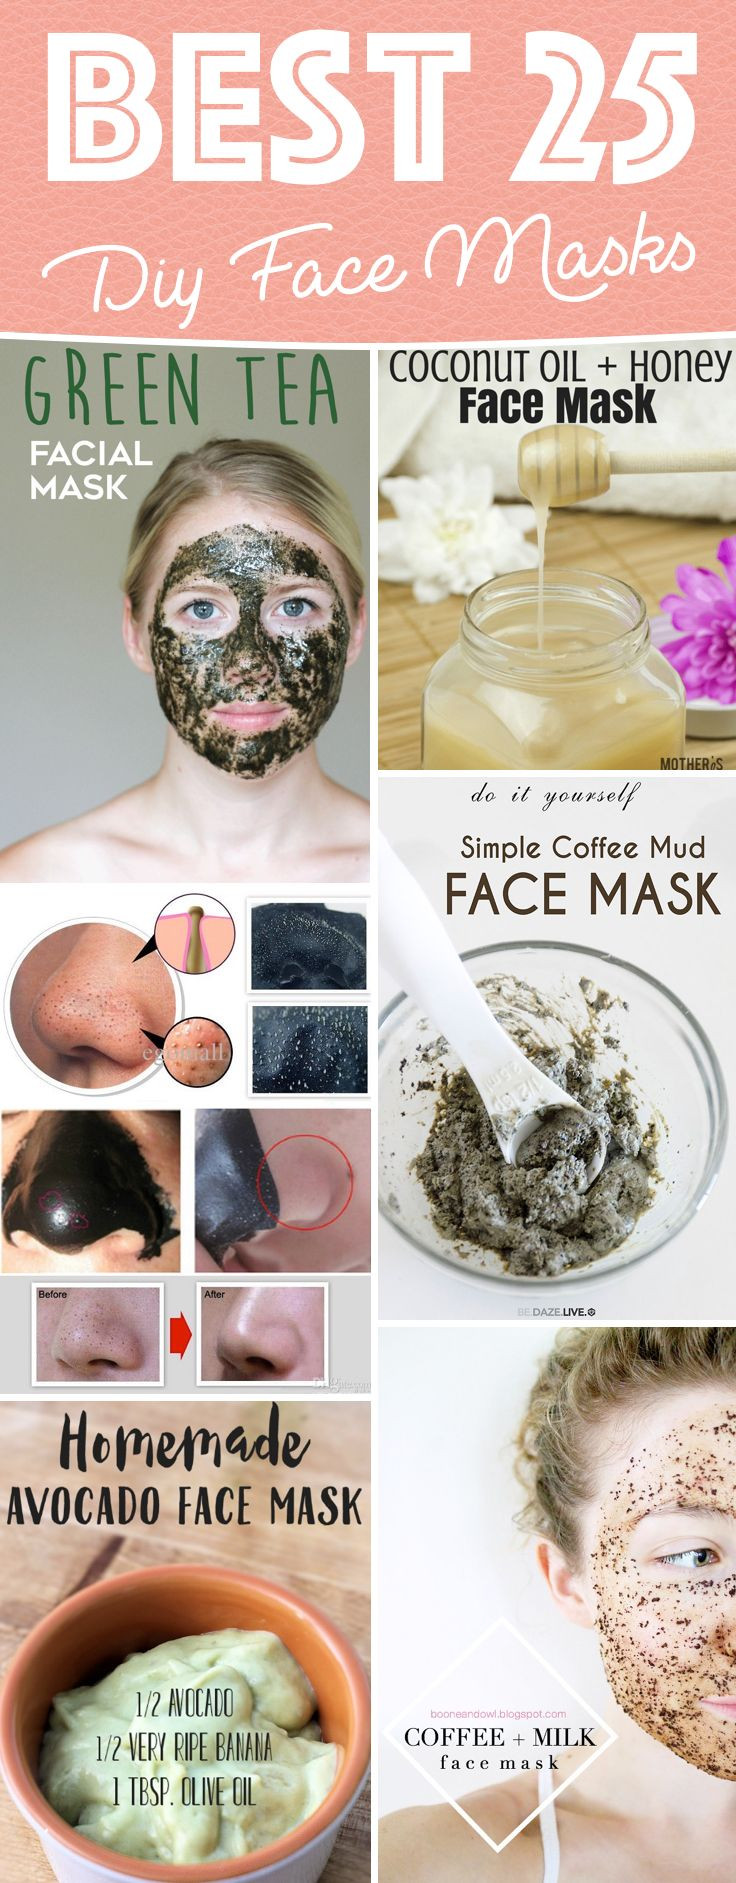 Best ideas about DIY Homemade Face Masks . Save or Pin 25 best ideas about Homemade Face Masks on Pinterest Now.